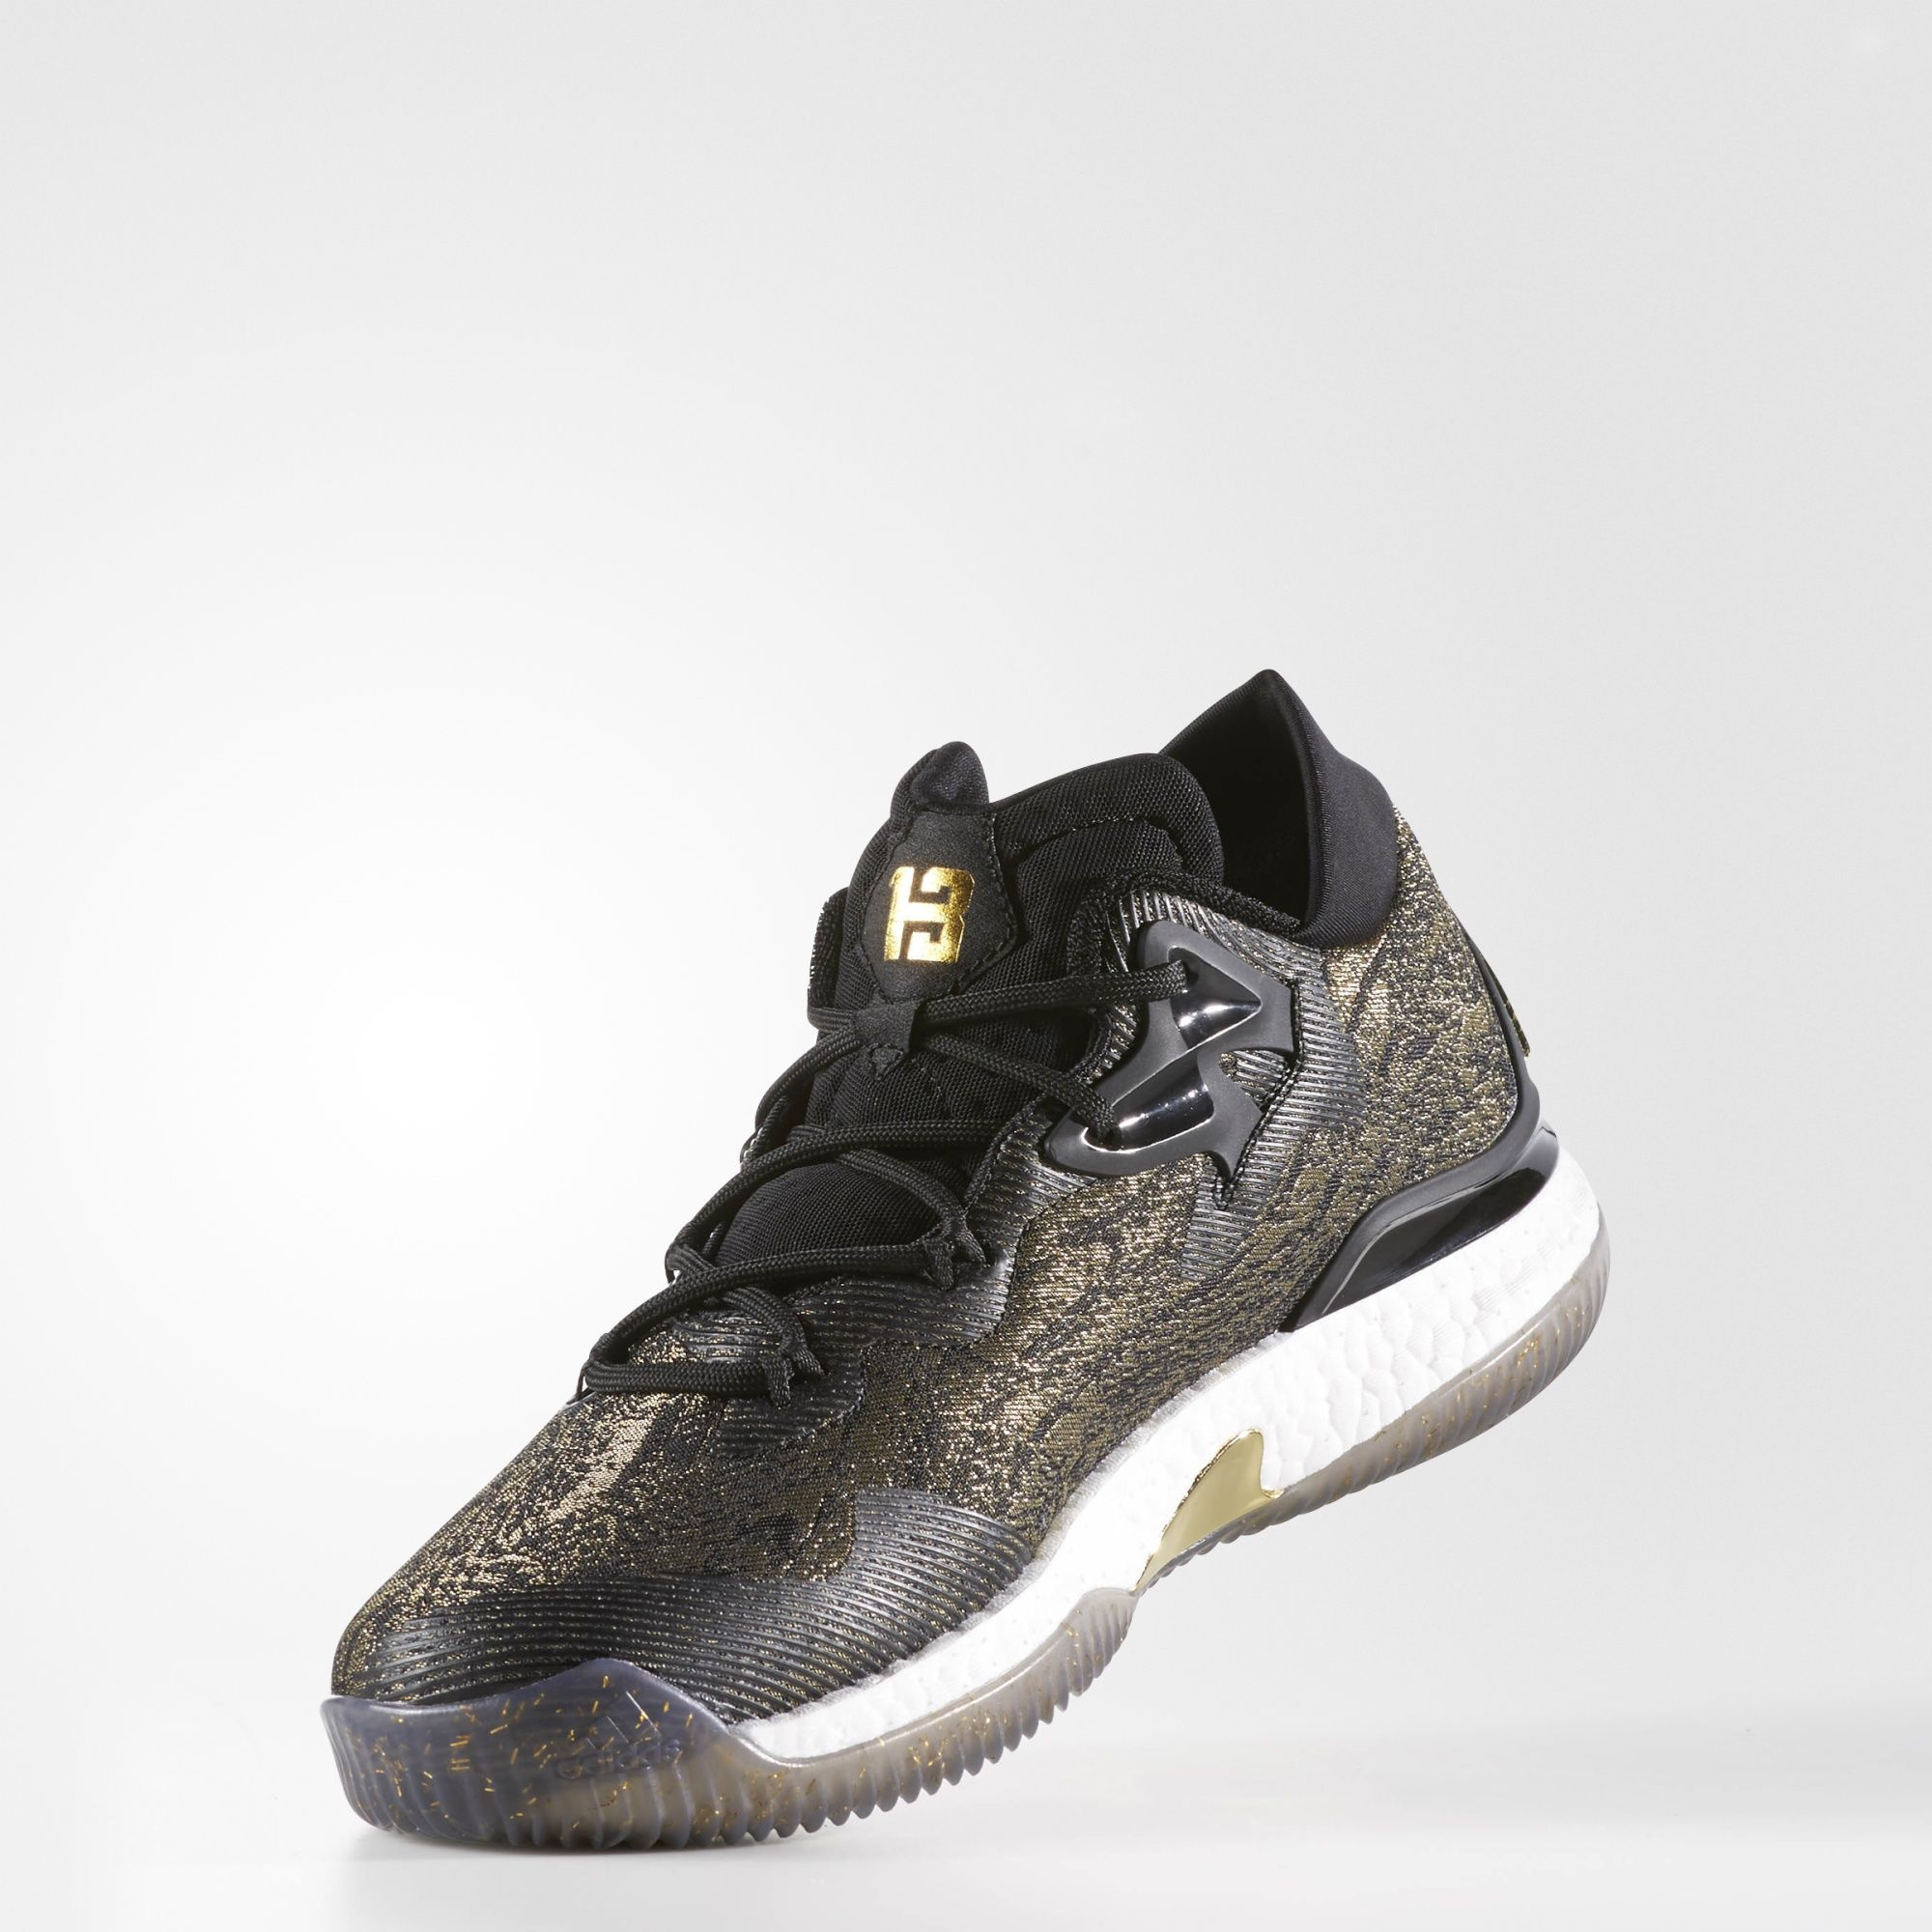 adidas crazylight boost 2016 gold